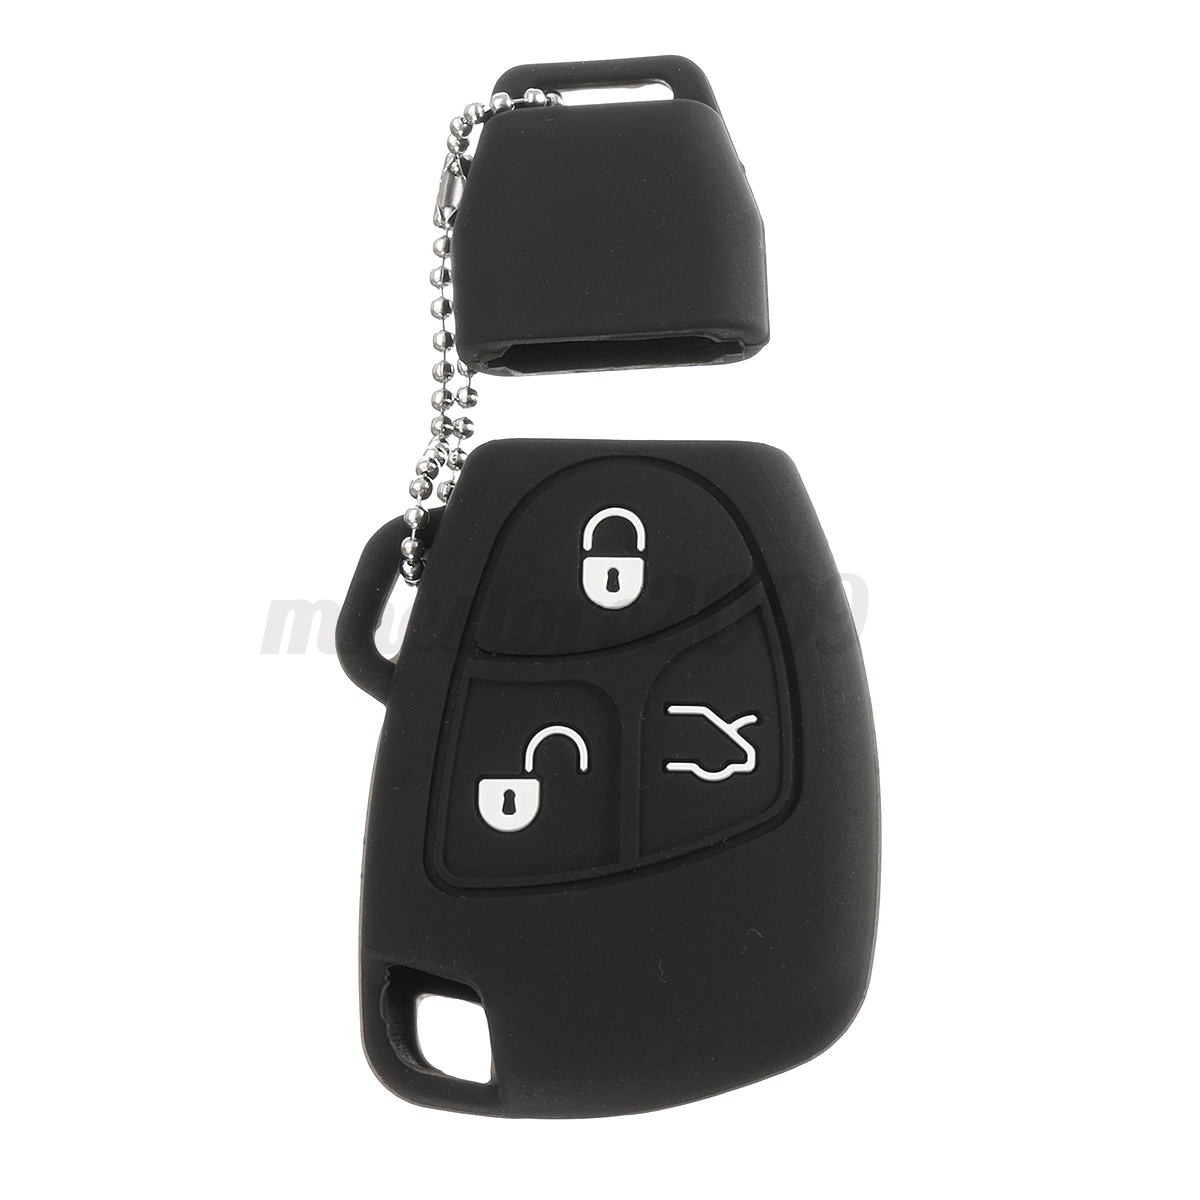 Silicone-3-Buttons-Remote-Key-Fob-Case-Shell-Cover-Holders-For-Mercedes-Benz miniature 16